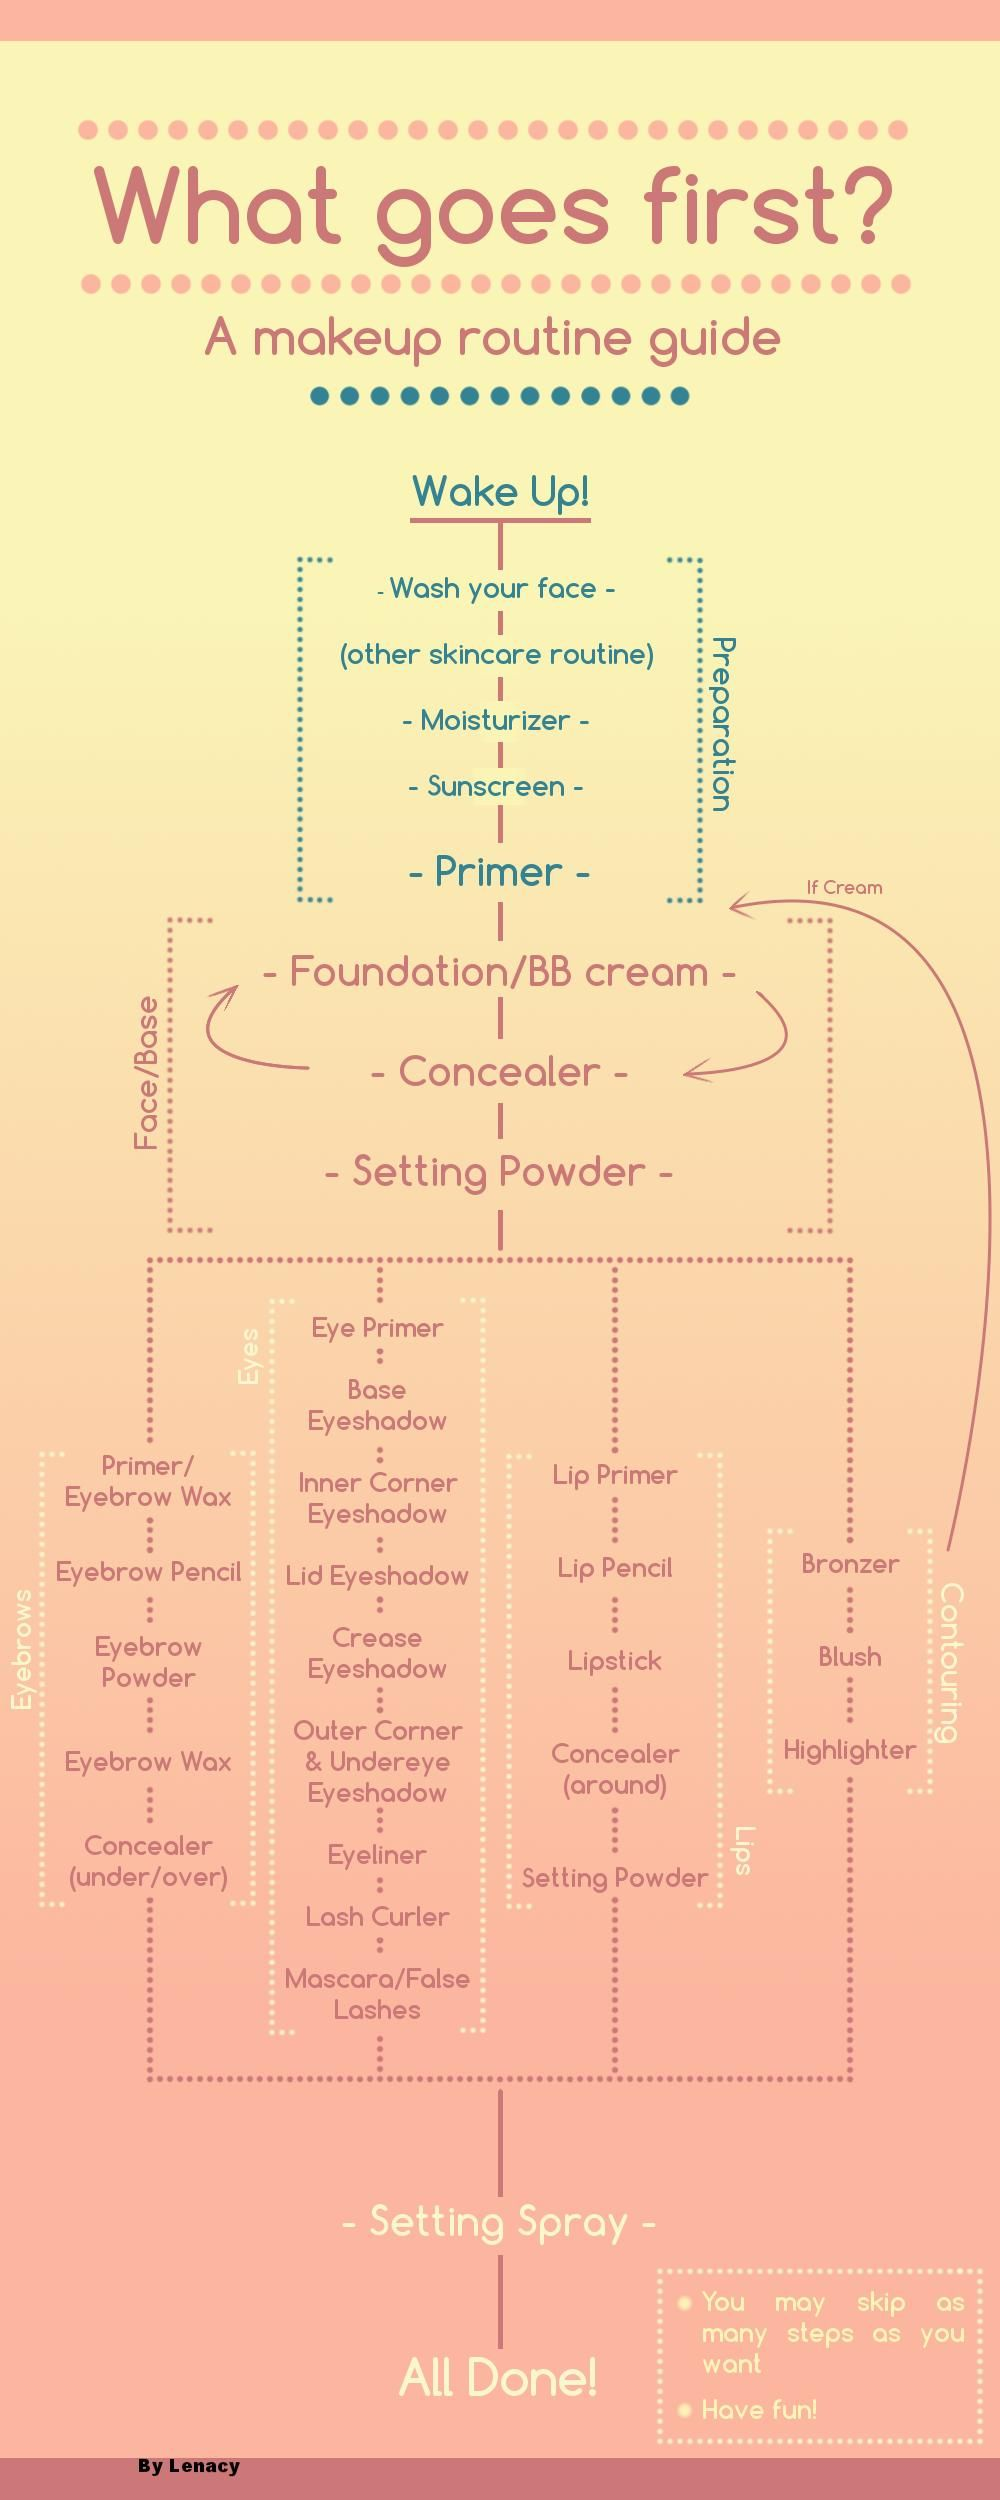 hight resolution of incredibly useful makeup order flowchart by u lenacy on reddit for those who aren t sure what goes first